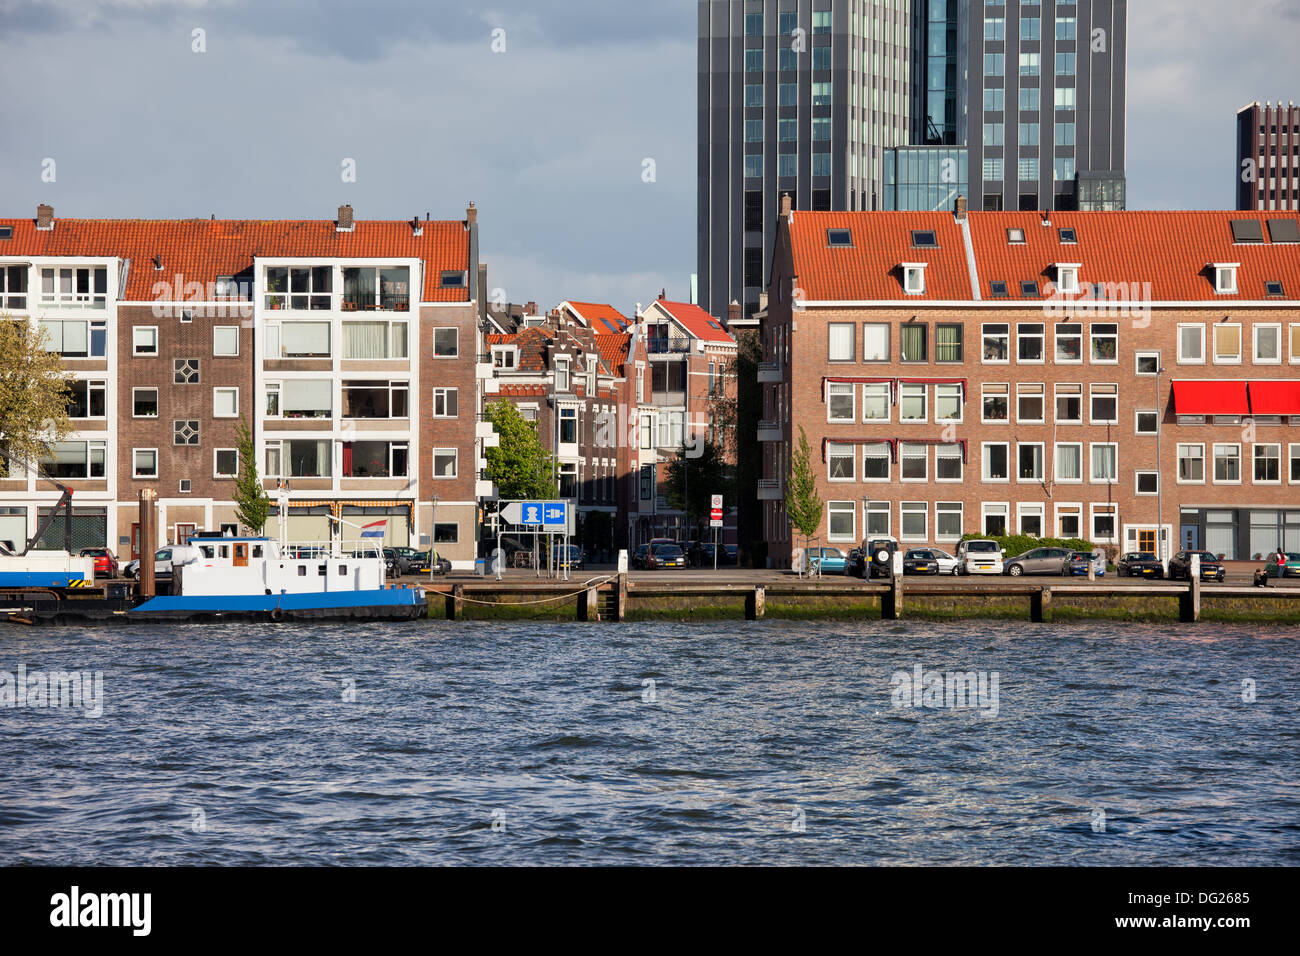 Terraced houses along the river in Rotterdam city centre, Netherlands. Stock Photo